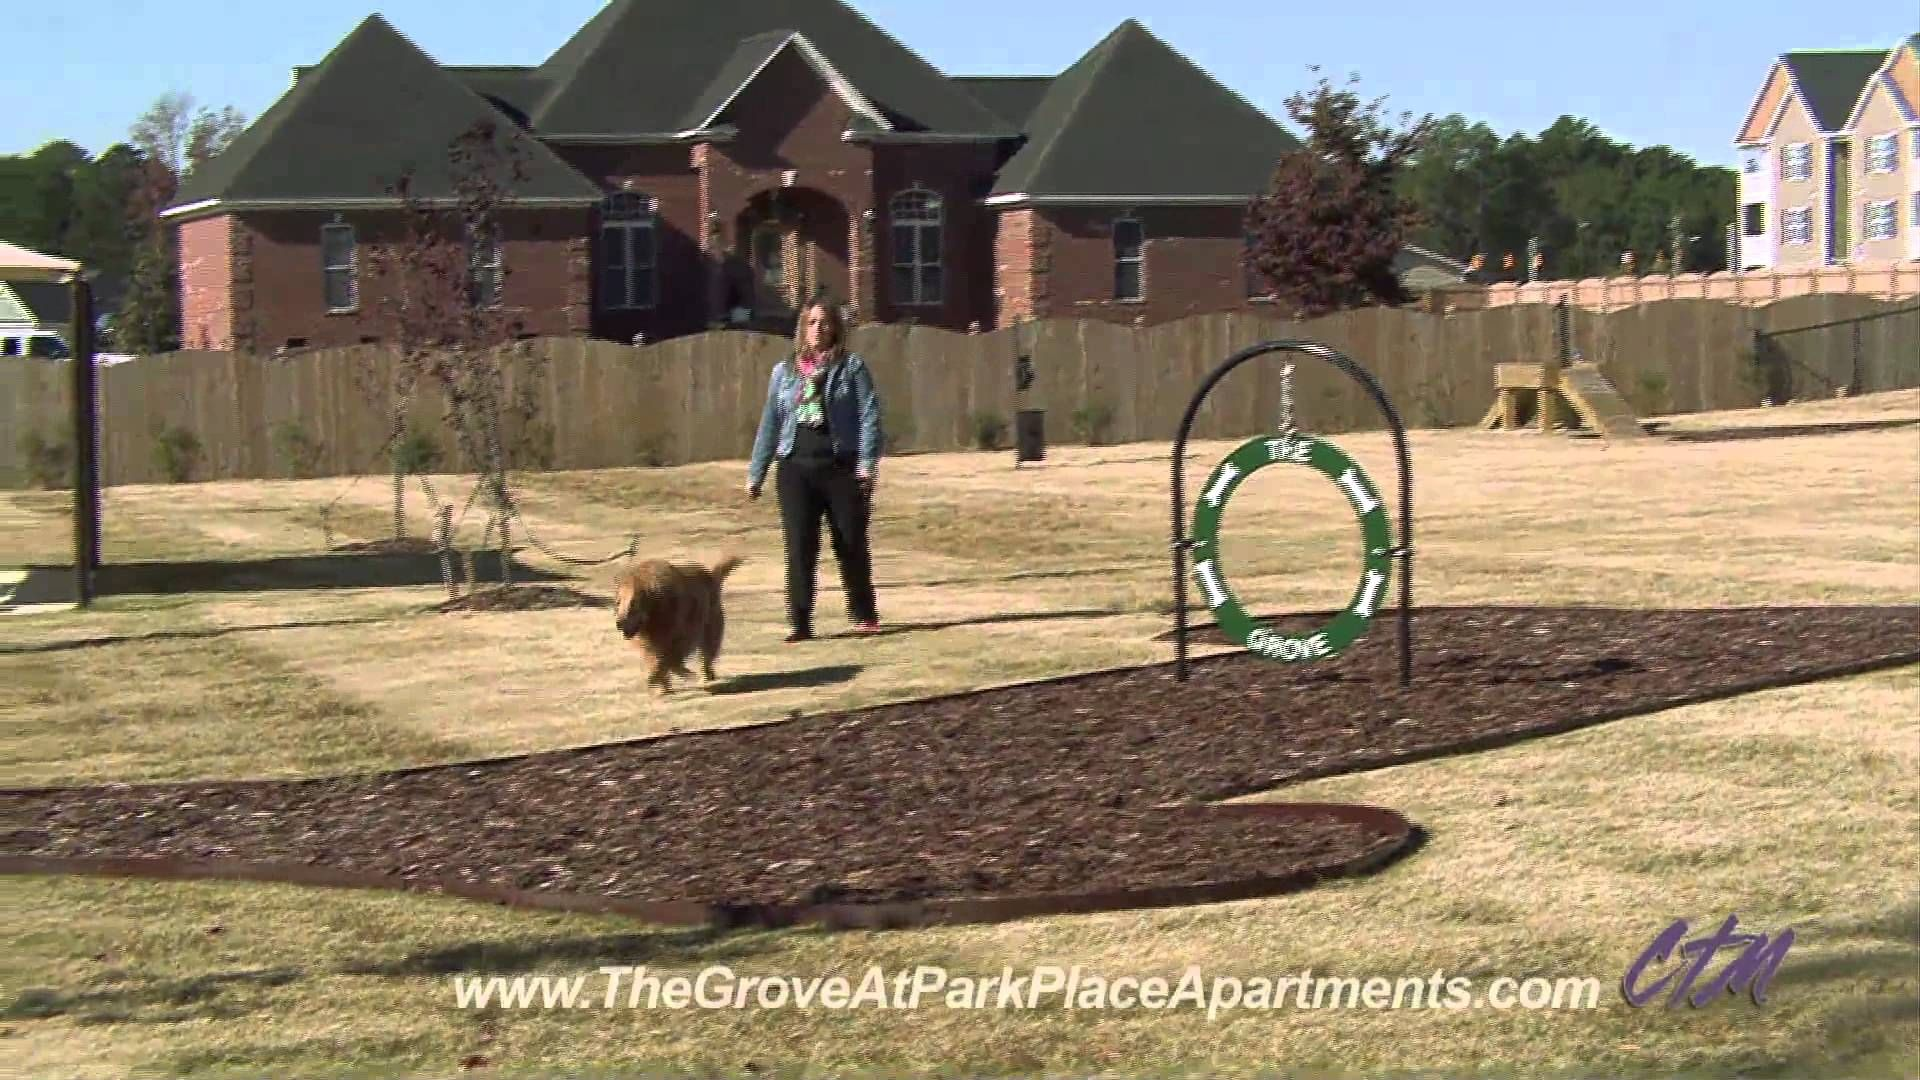 The Grove At Park Place Fayetteville Nc Apartments Caviness And Cates Places Caviness Cumberland County